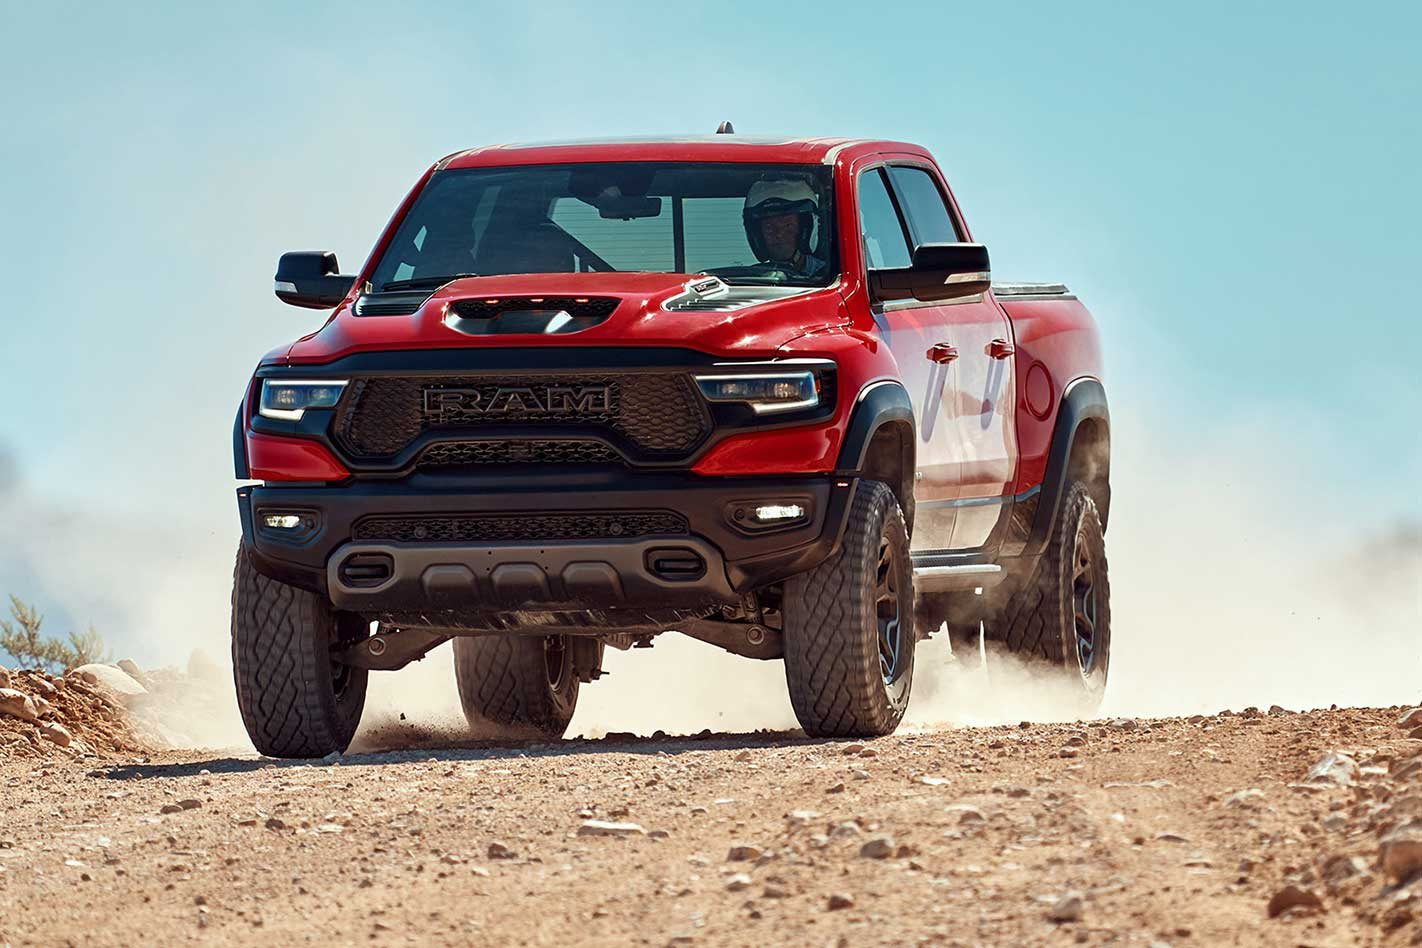 2021 Ram 1500 Trx Debuts With Australian Launch Likely